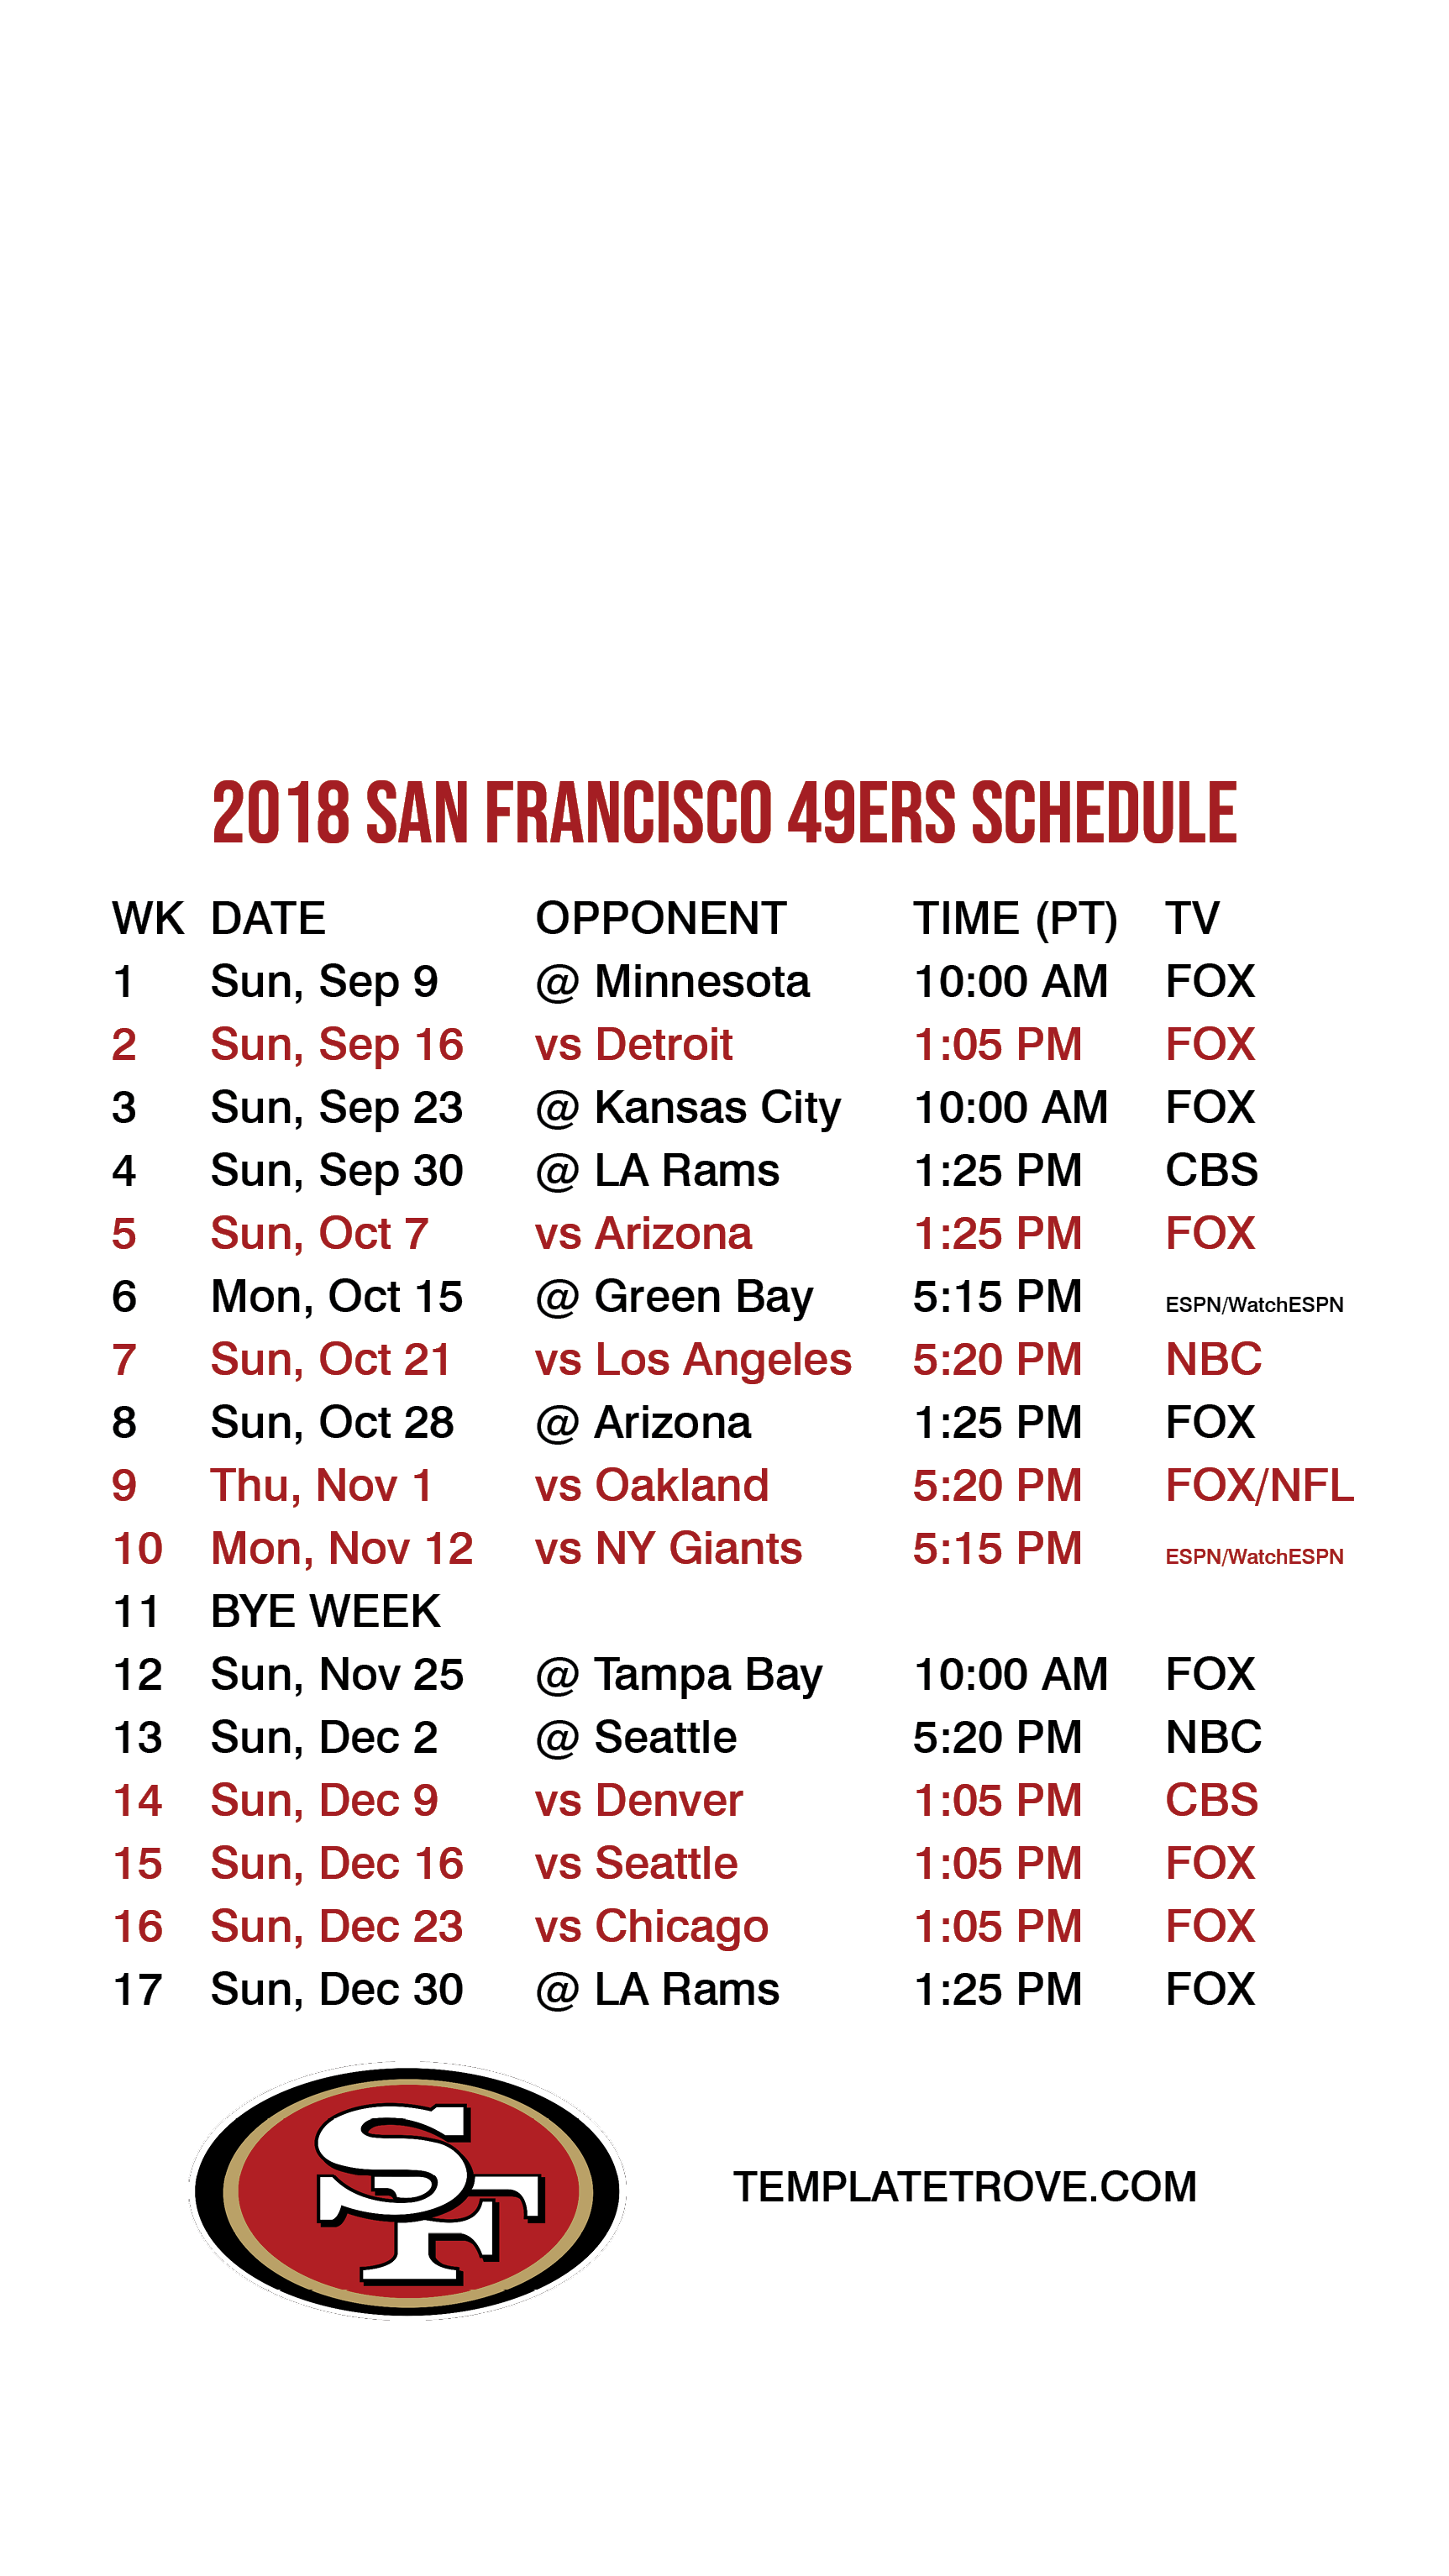 photograph relating to 49ers Printable Schedule titled 2018-2019 San Francisco 49ers Lock Show Program for